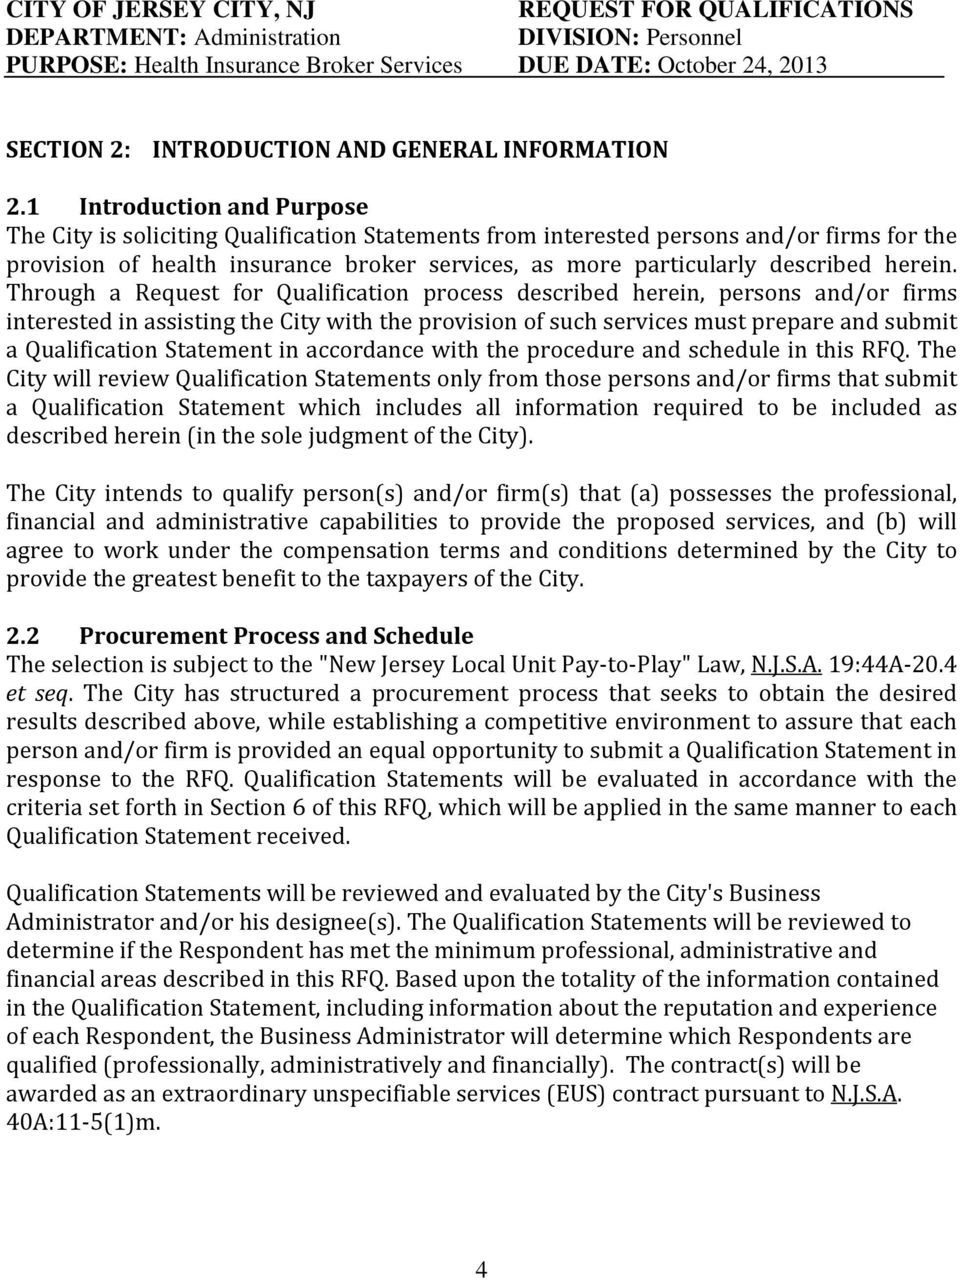 1 Introduction and Purpose The City is soliciting Qualification Statements from interested persons and/or firms for the provision of health insurance broker services, as more particularly described